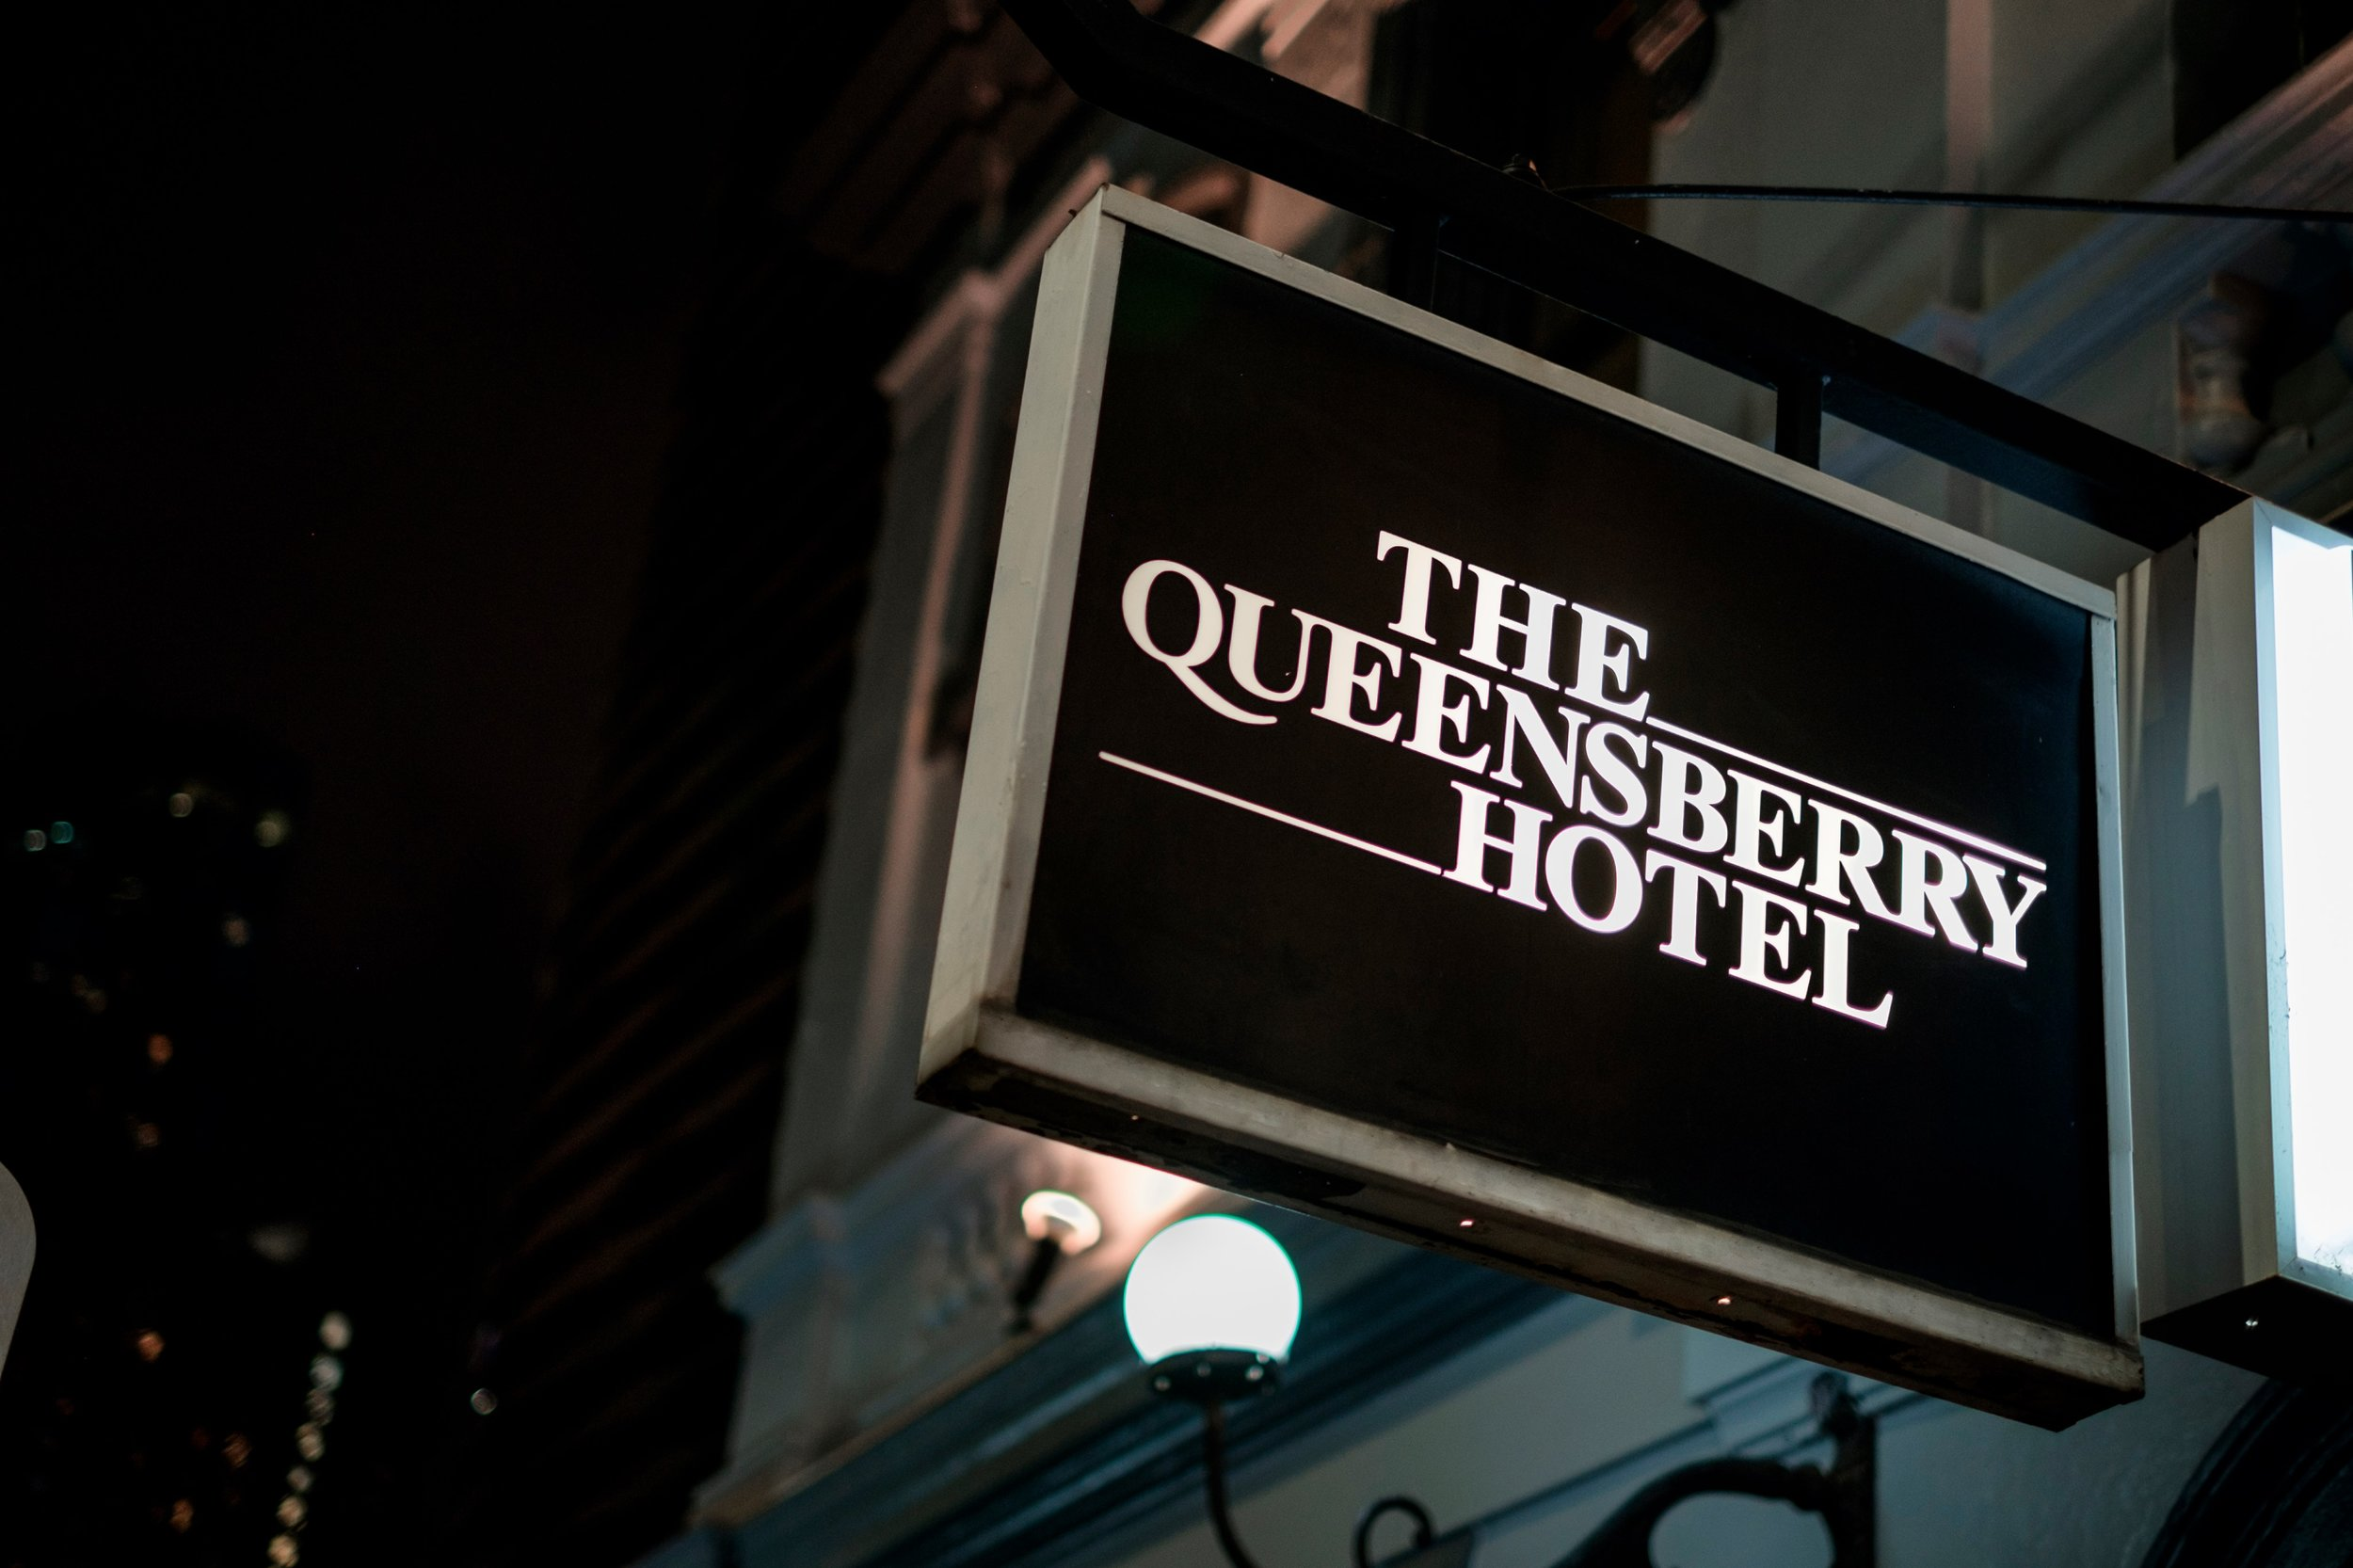 AN OLD FASHIONED PUB - Established in 1854, the Queensberry is one of the oldest pubs in Melbourne. Featuring Public Bar, Dining Room, Covered Terrace, Beer Garden & Cafe spaces - we're sure to have the perfect space for your next function.